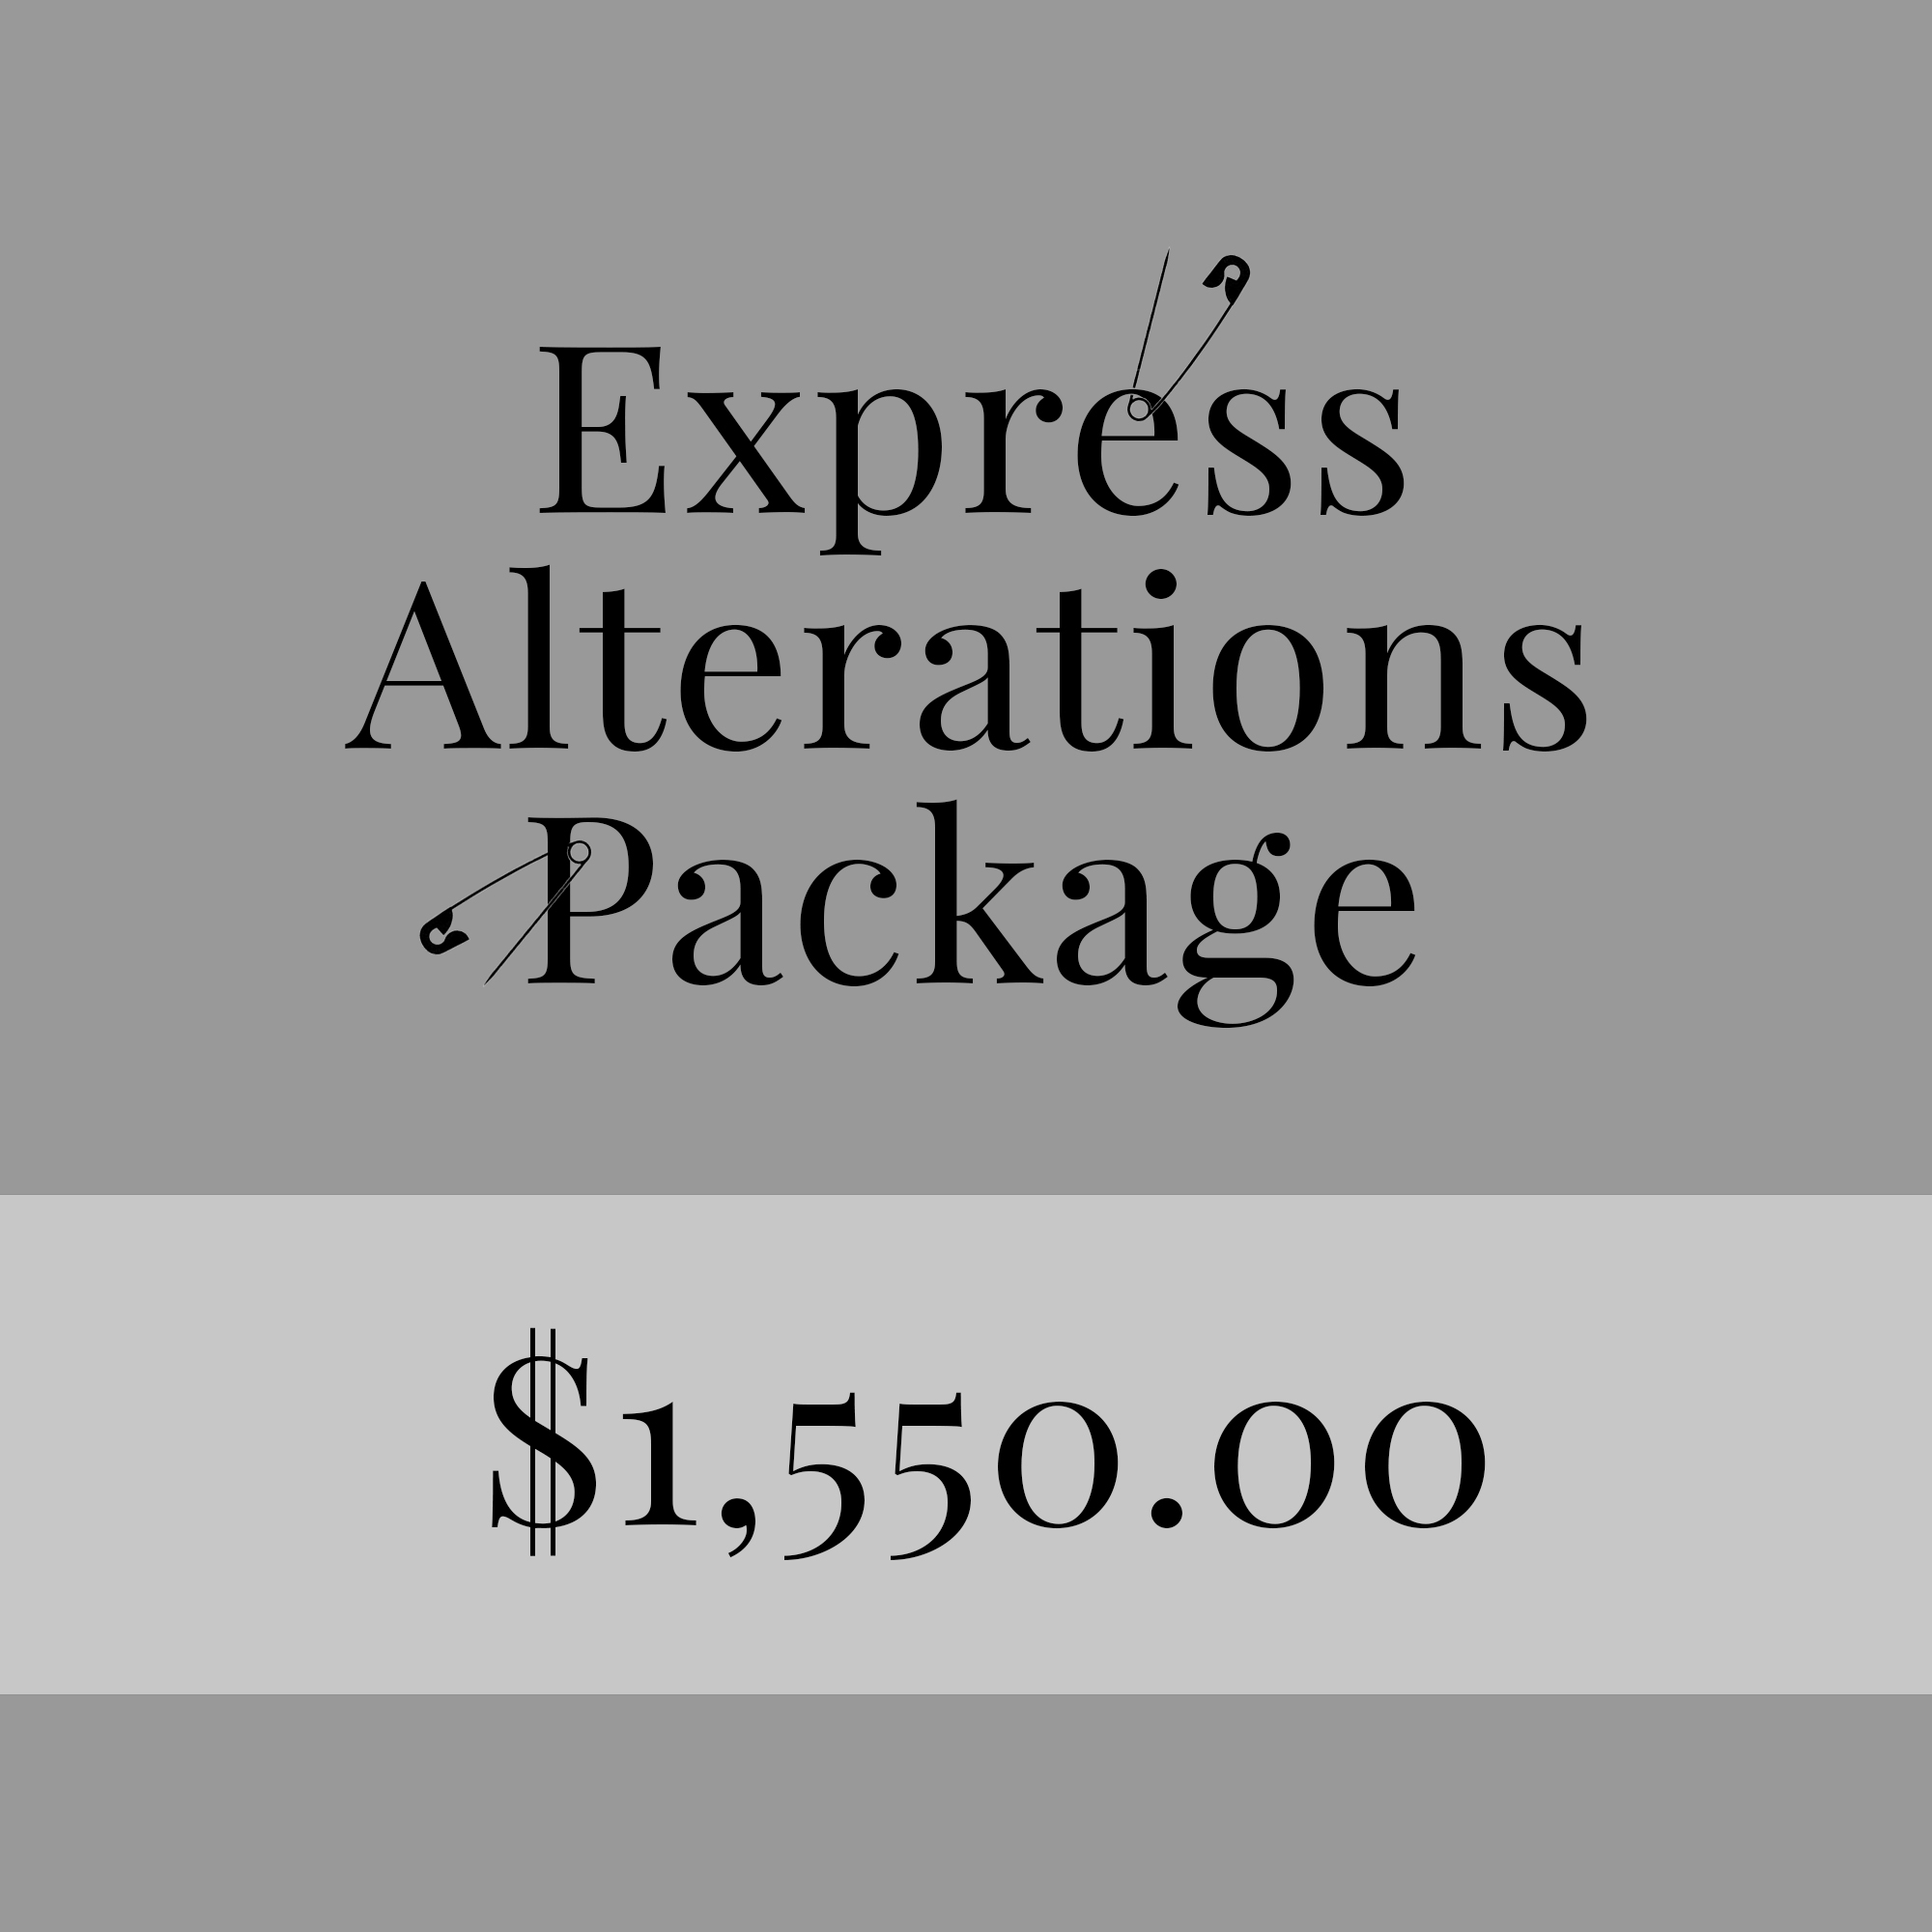 express alteration package